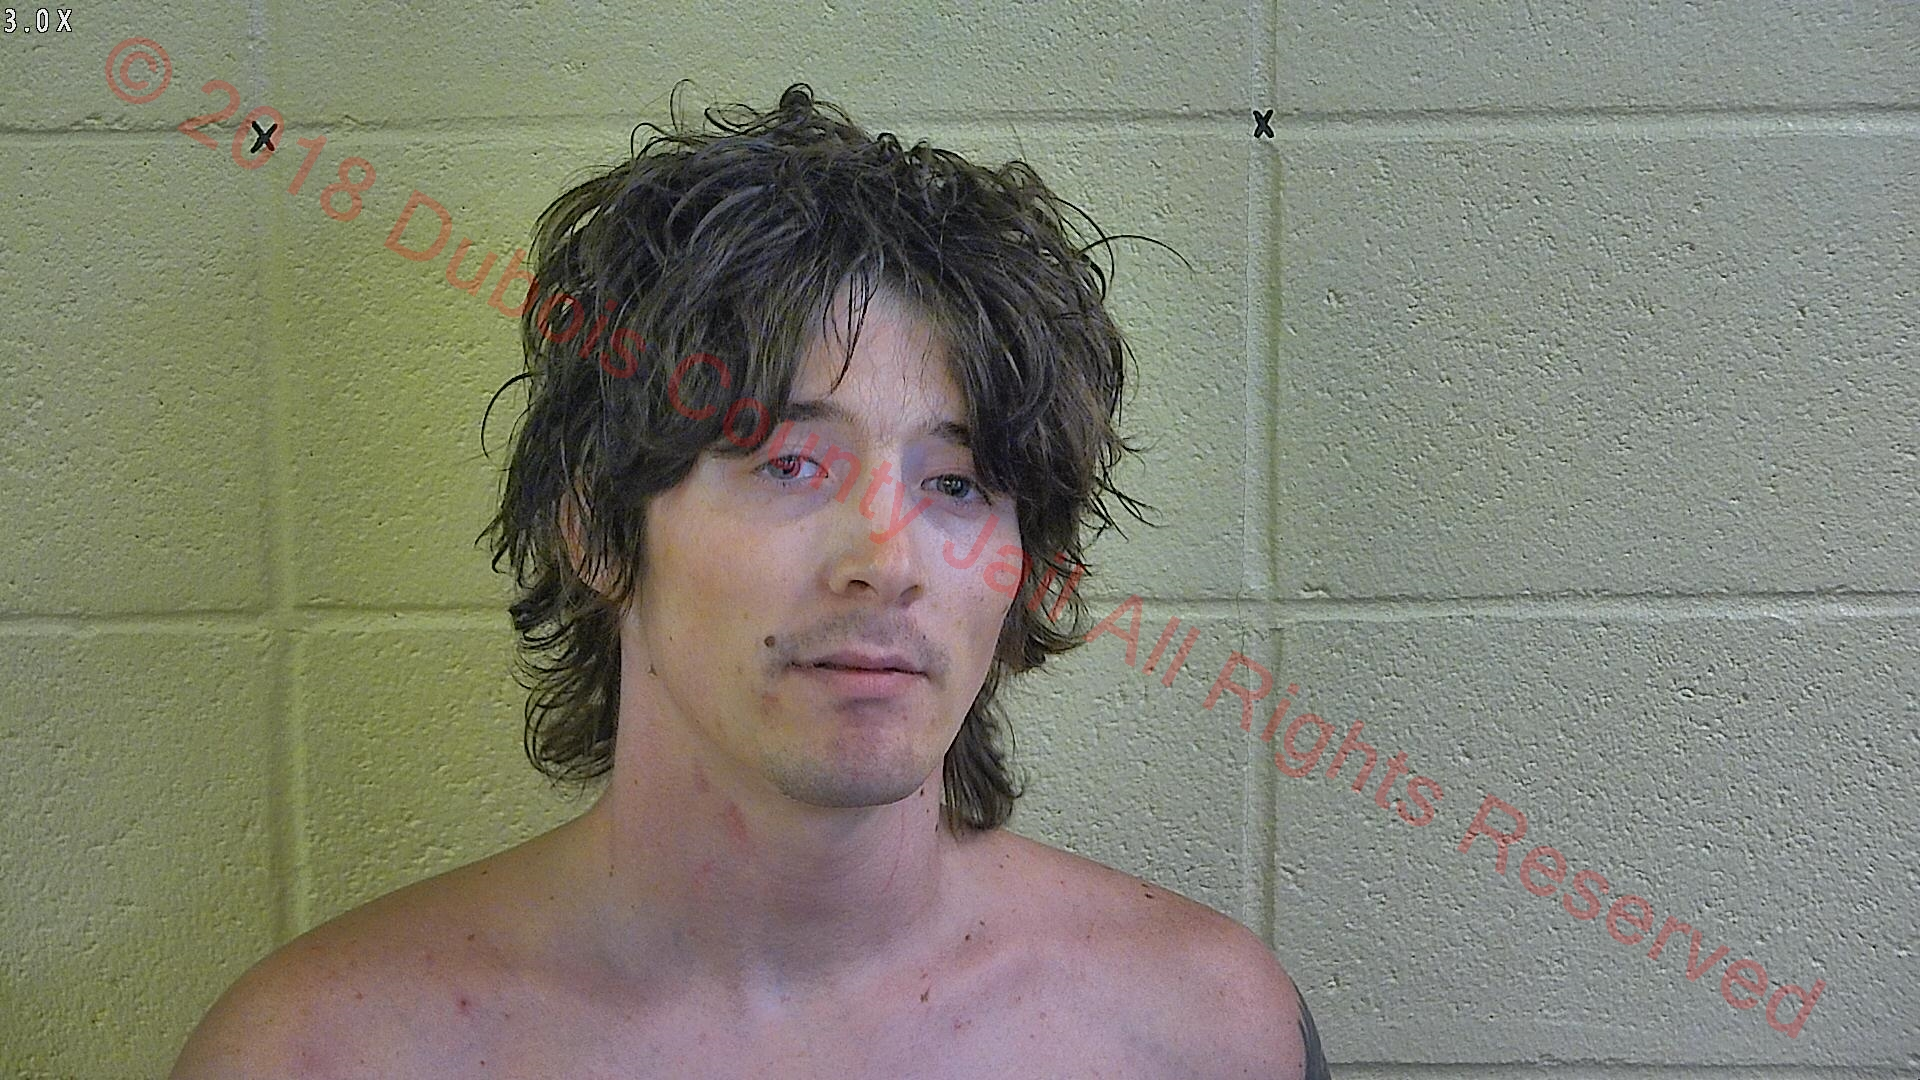 POLICE:  Man Swallows Pot, Goes to Jail